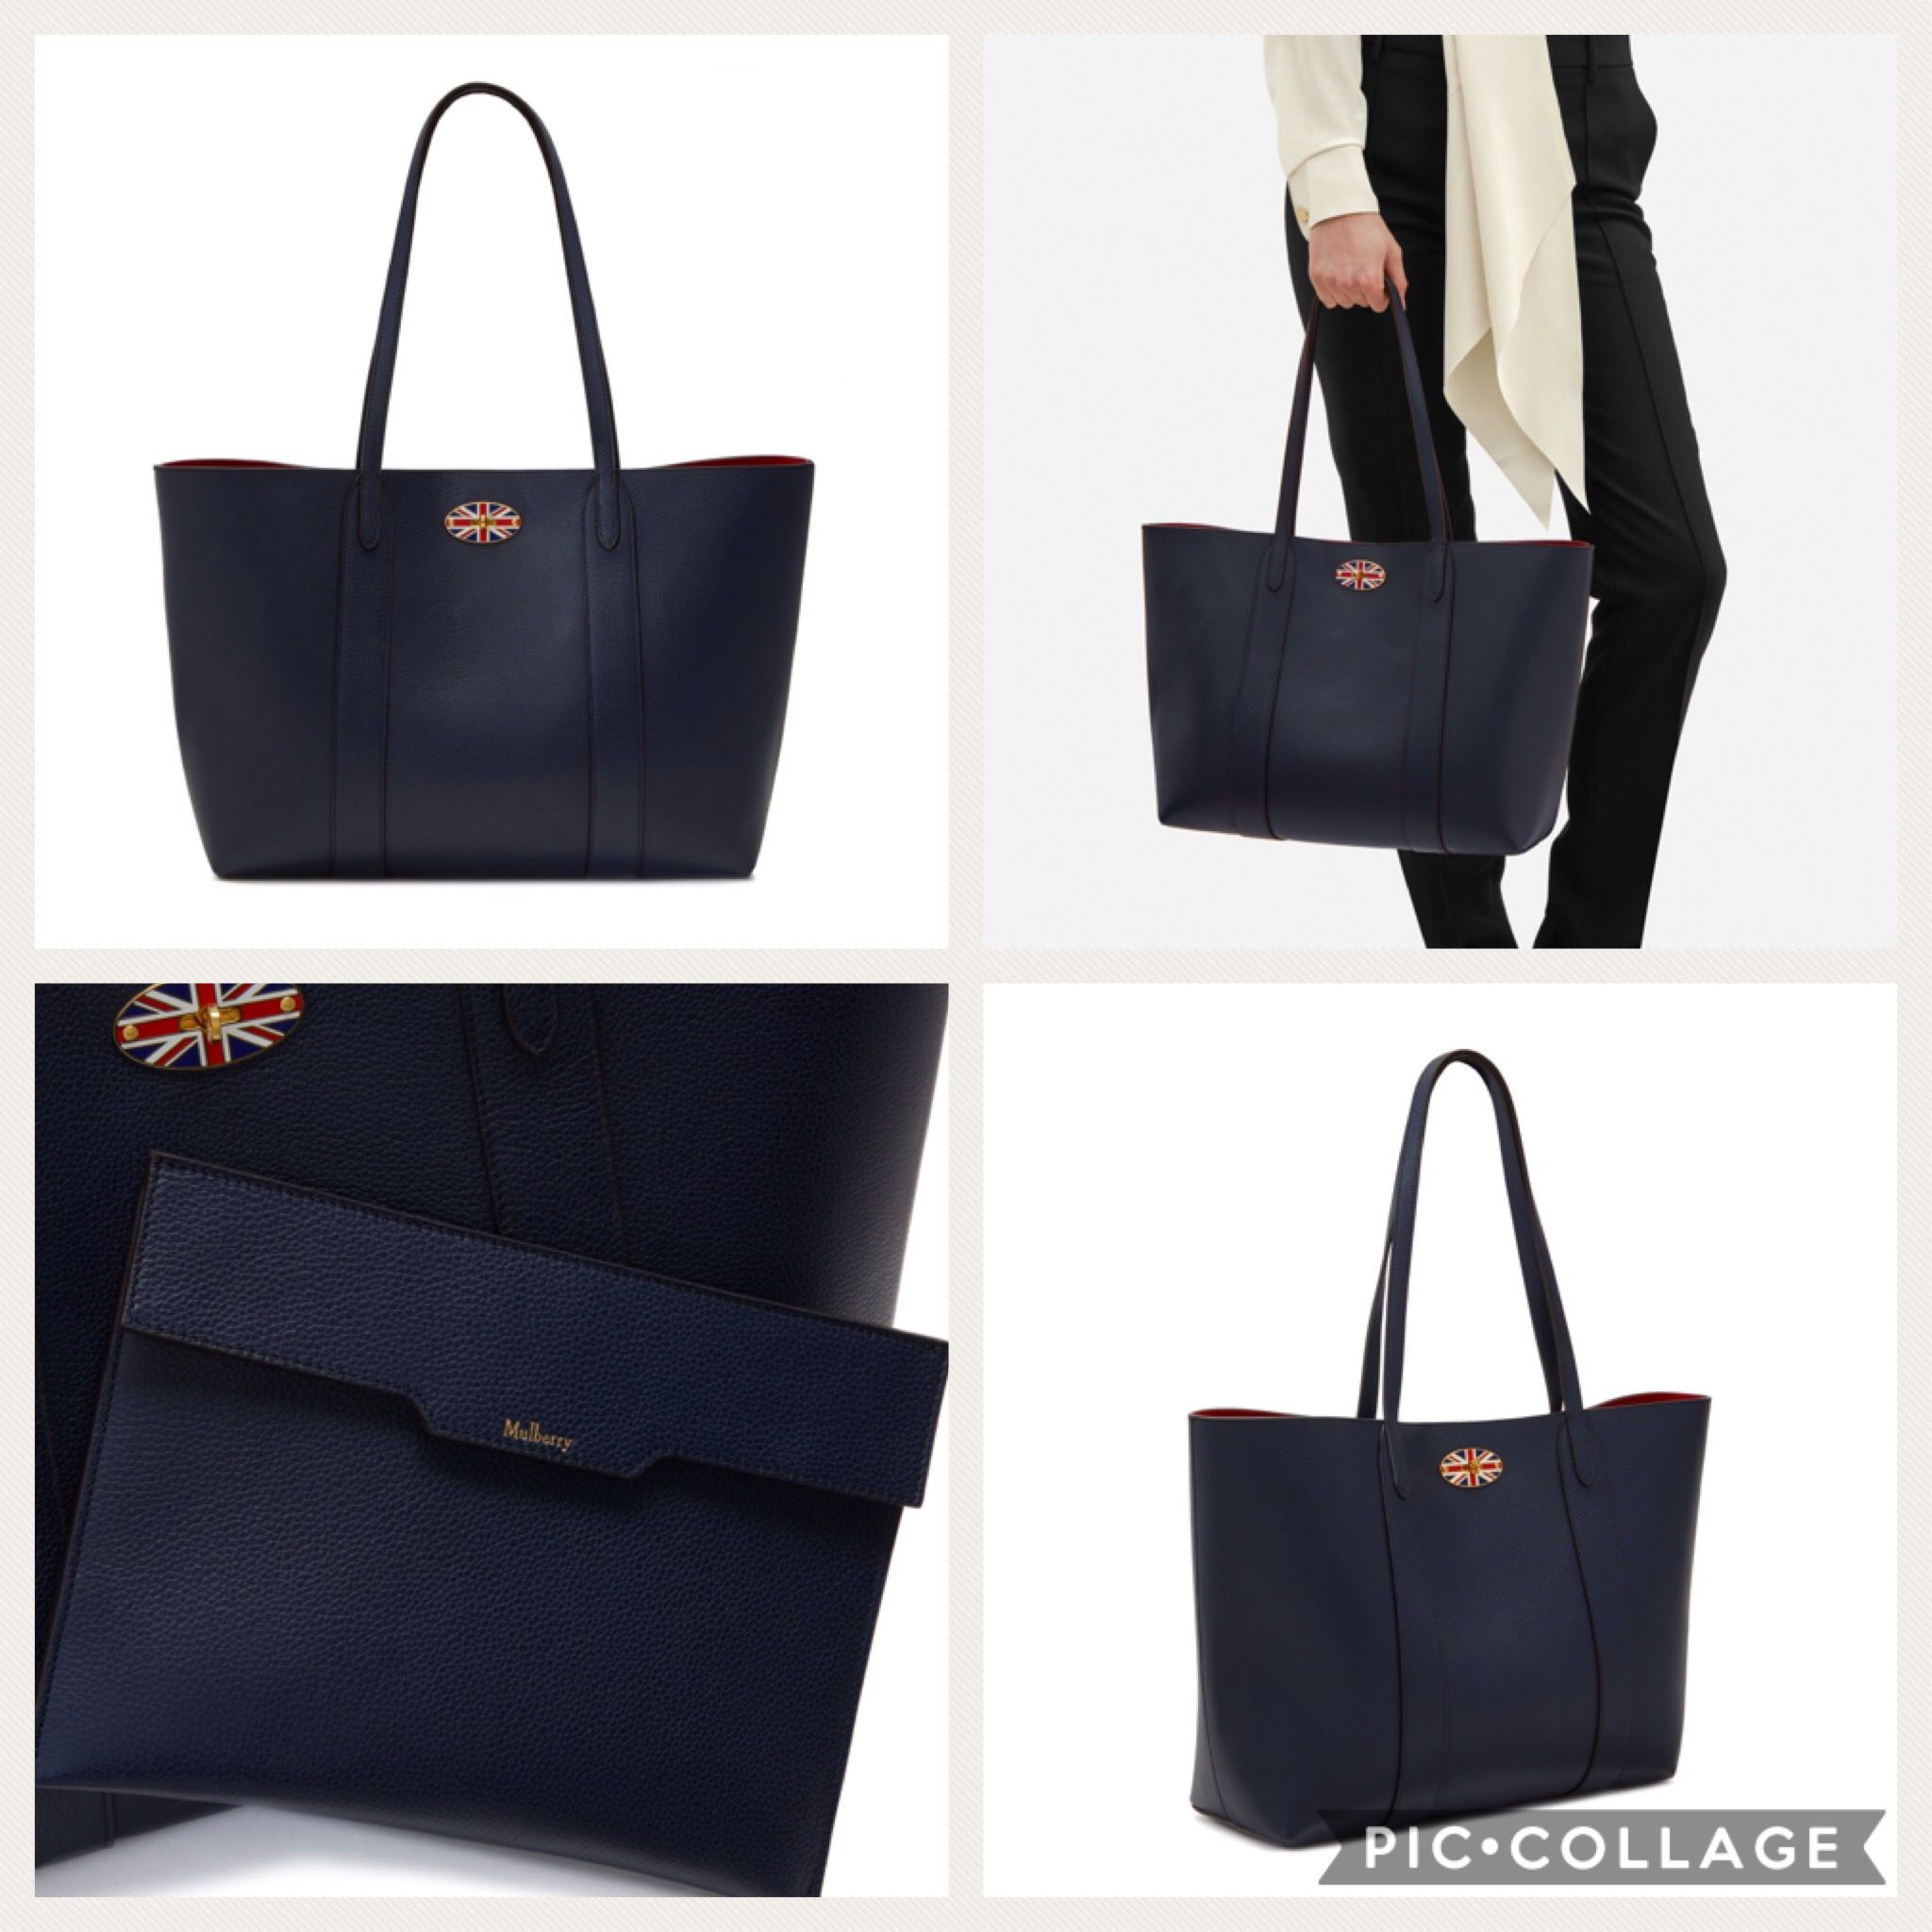 ... official mulberry new bayswater tote oxford blue scarlet aw17 92a23  97d89 dcd5285a5088e